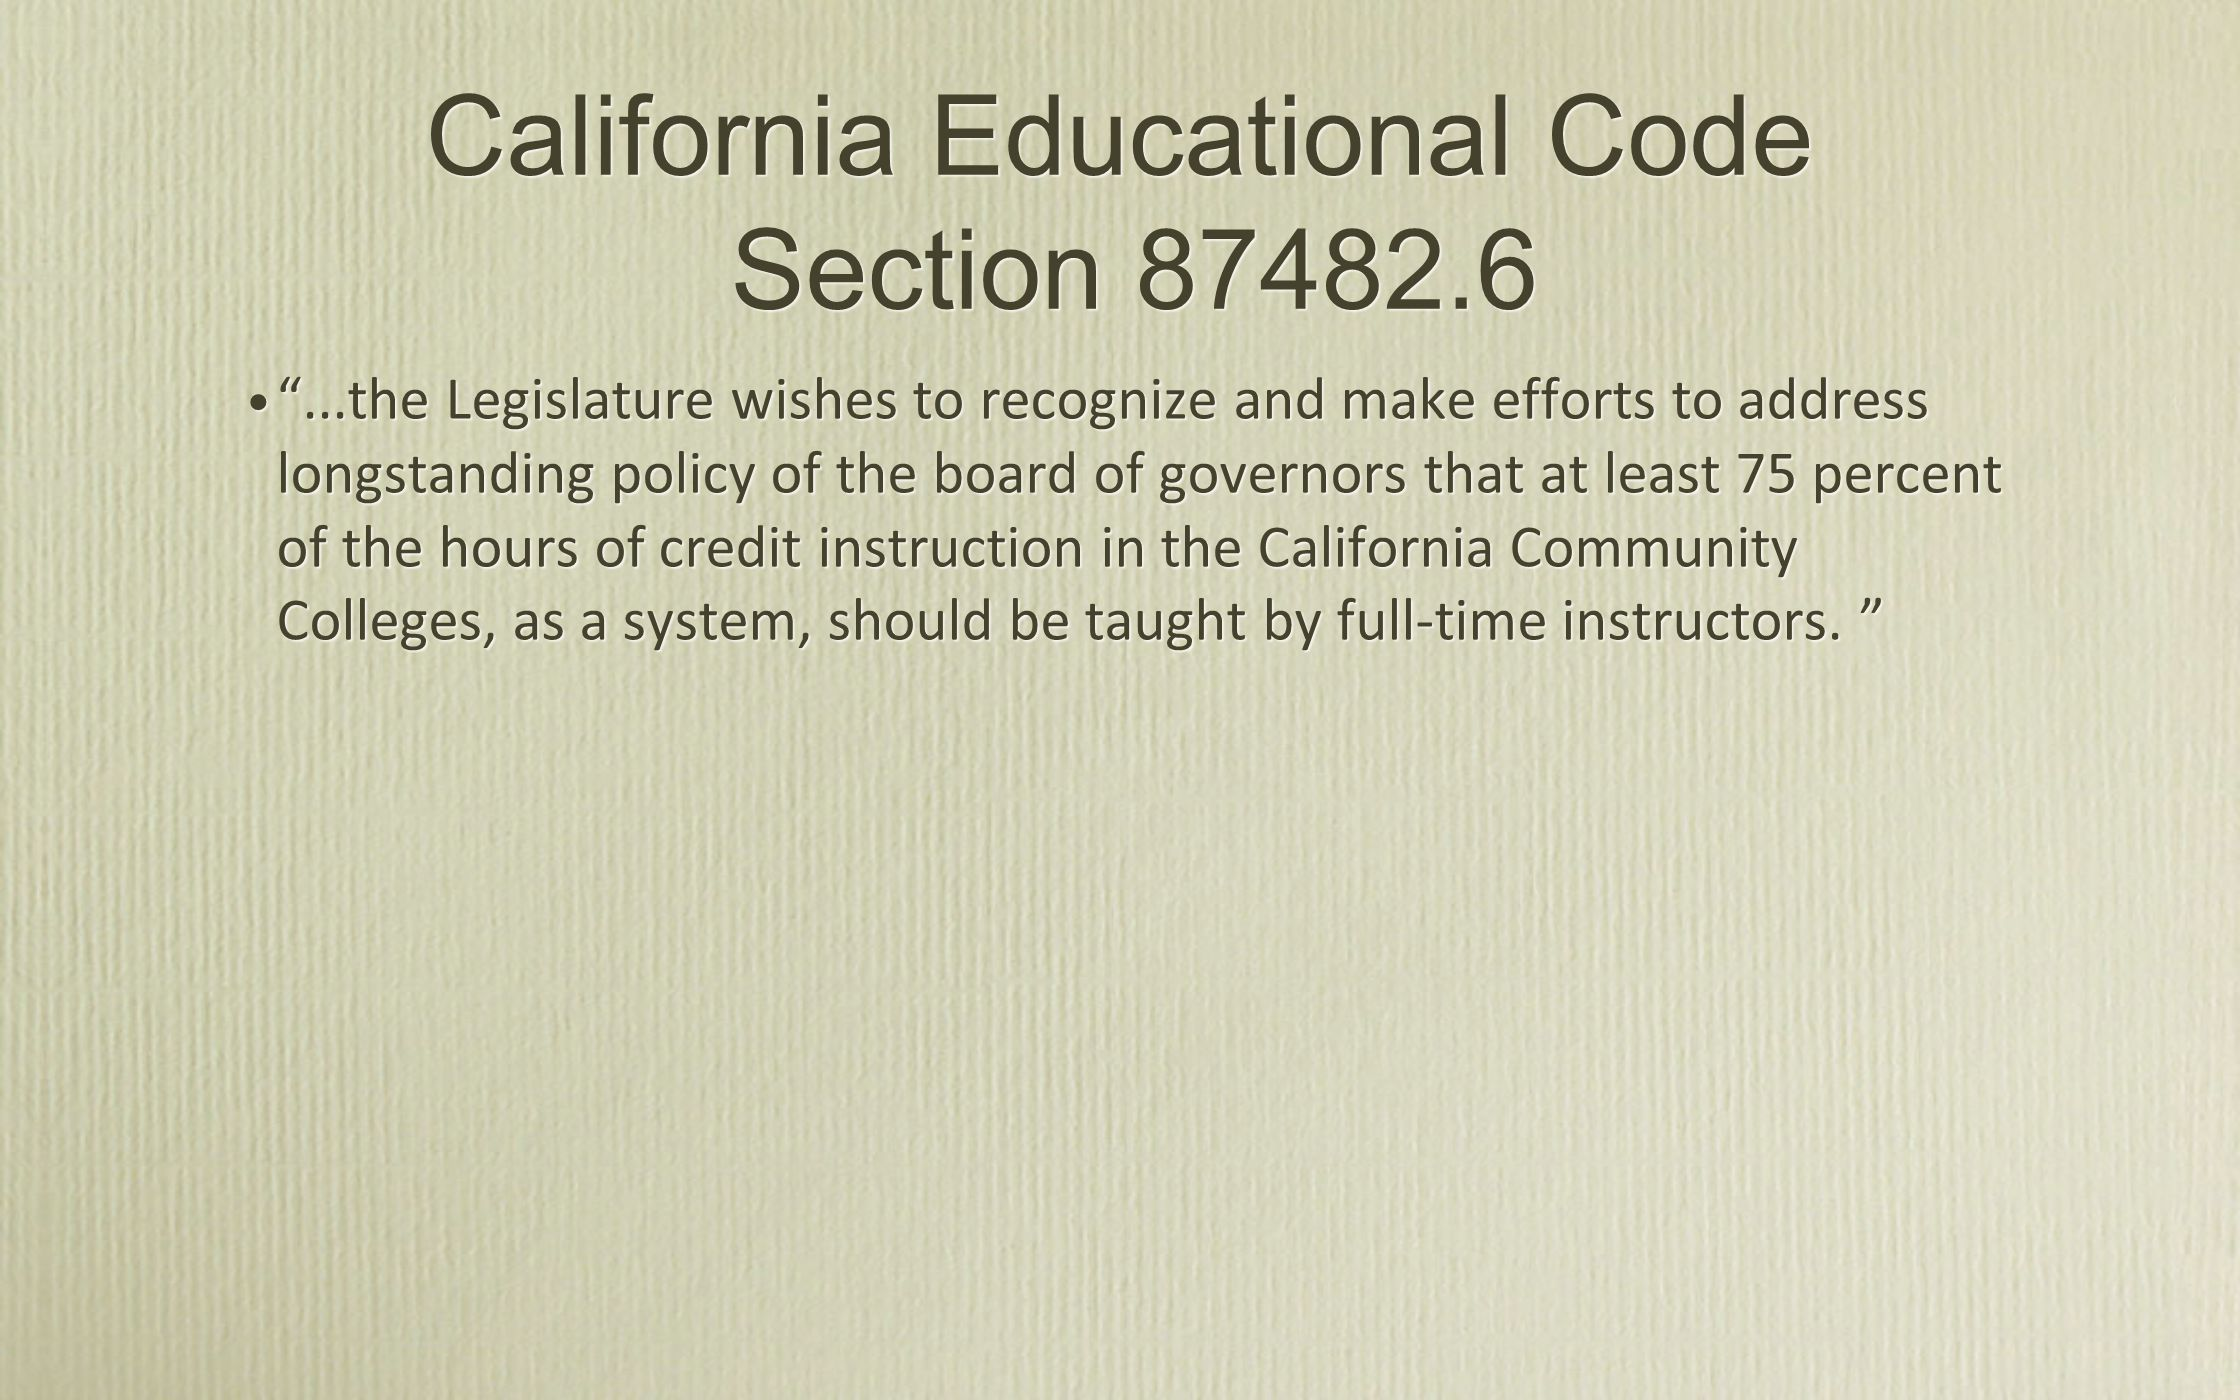 California Educational Code Section 87482.6 ...the Legislature wishes to recognize and make efforts to address longstanding policy of the board of governors that at least 75 percent of the hours of credit instruction in the California Community Colleges, as a system, should be taught by full-time instructors.